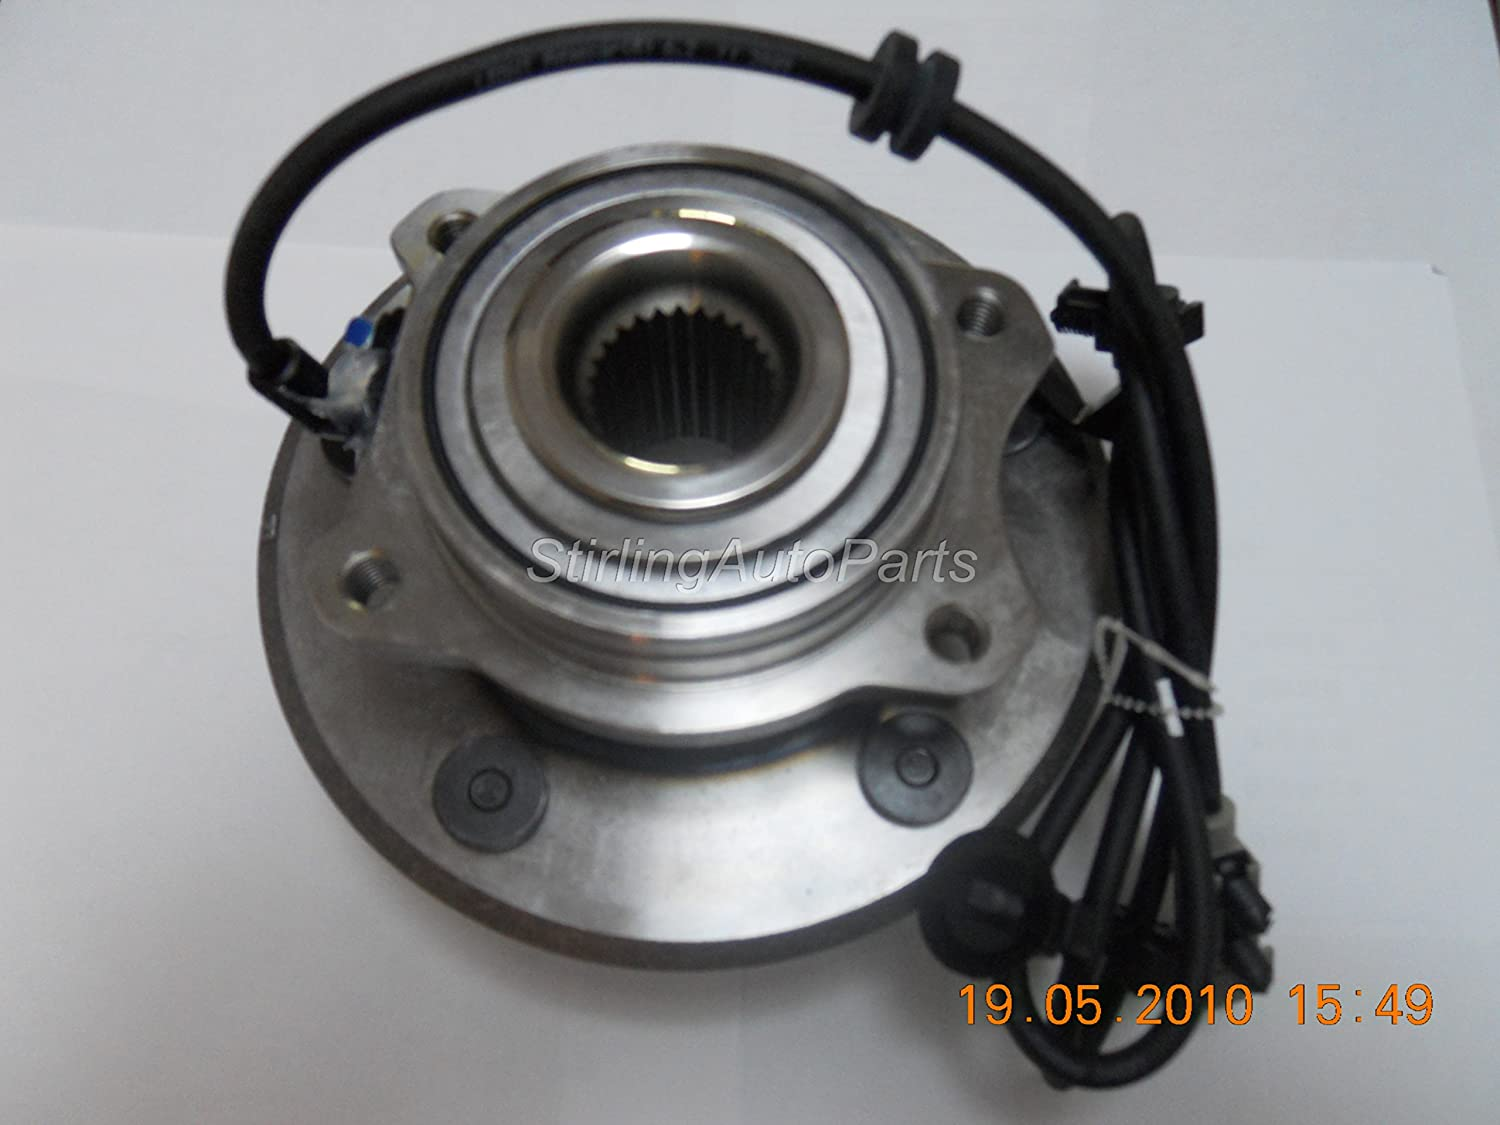 2006 For Chrysler Pacifica Rear Wheel Bearing and Hub Assembly x 2 Stirling